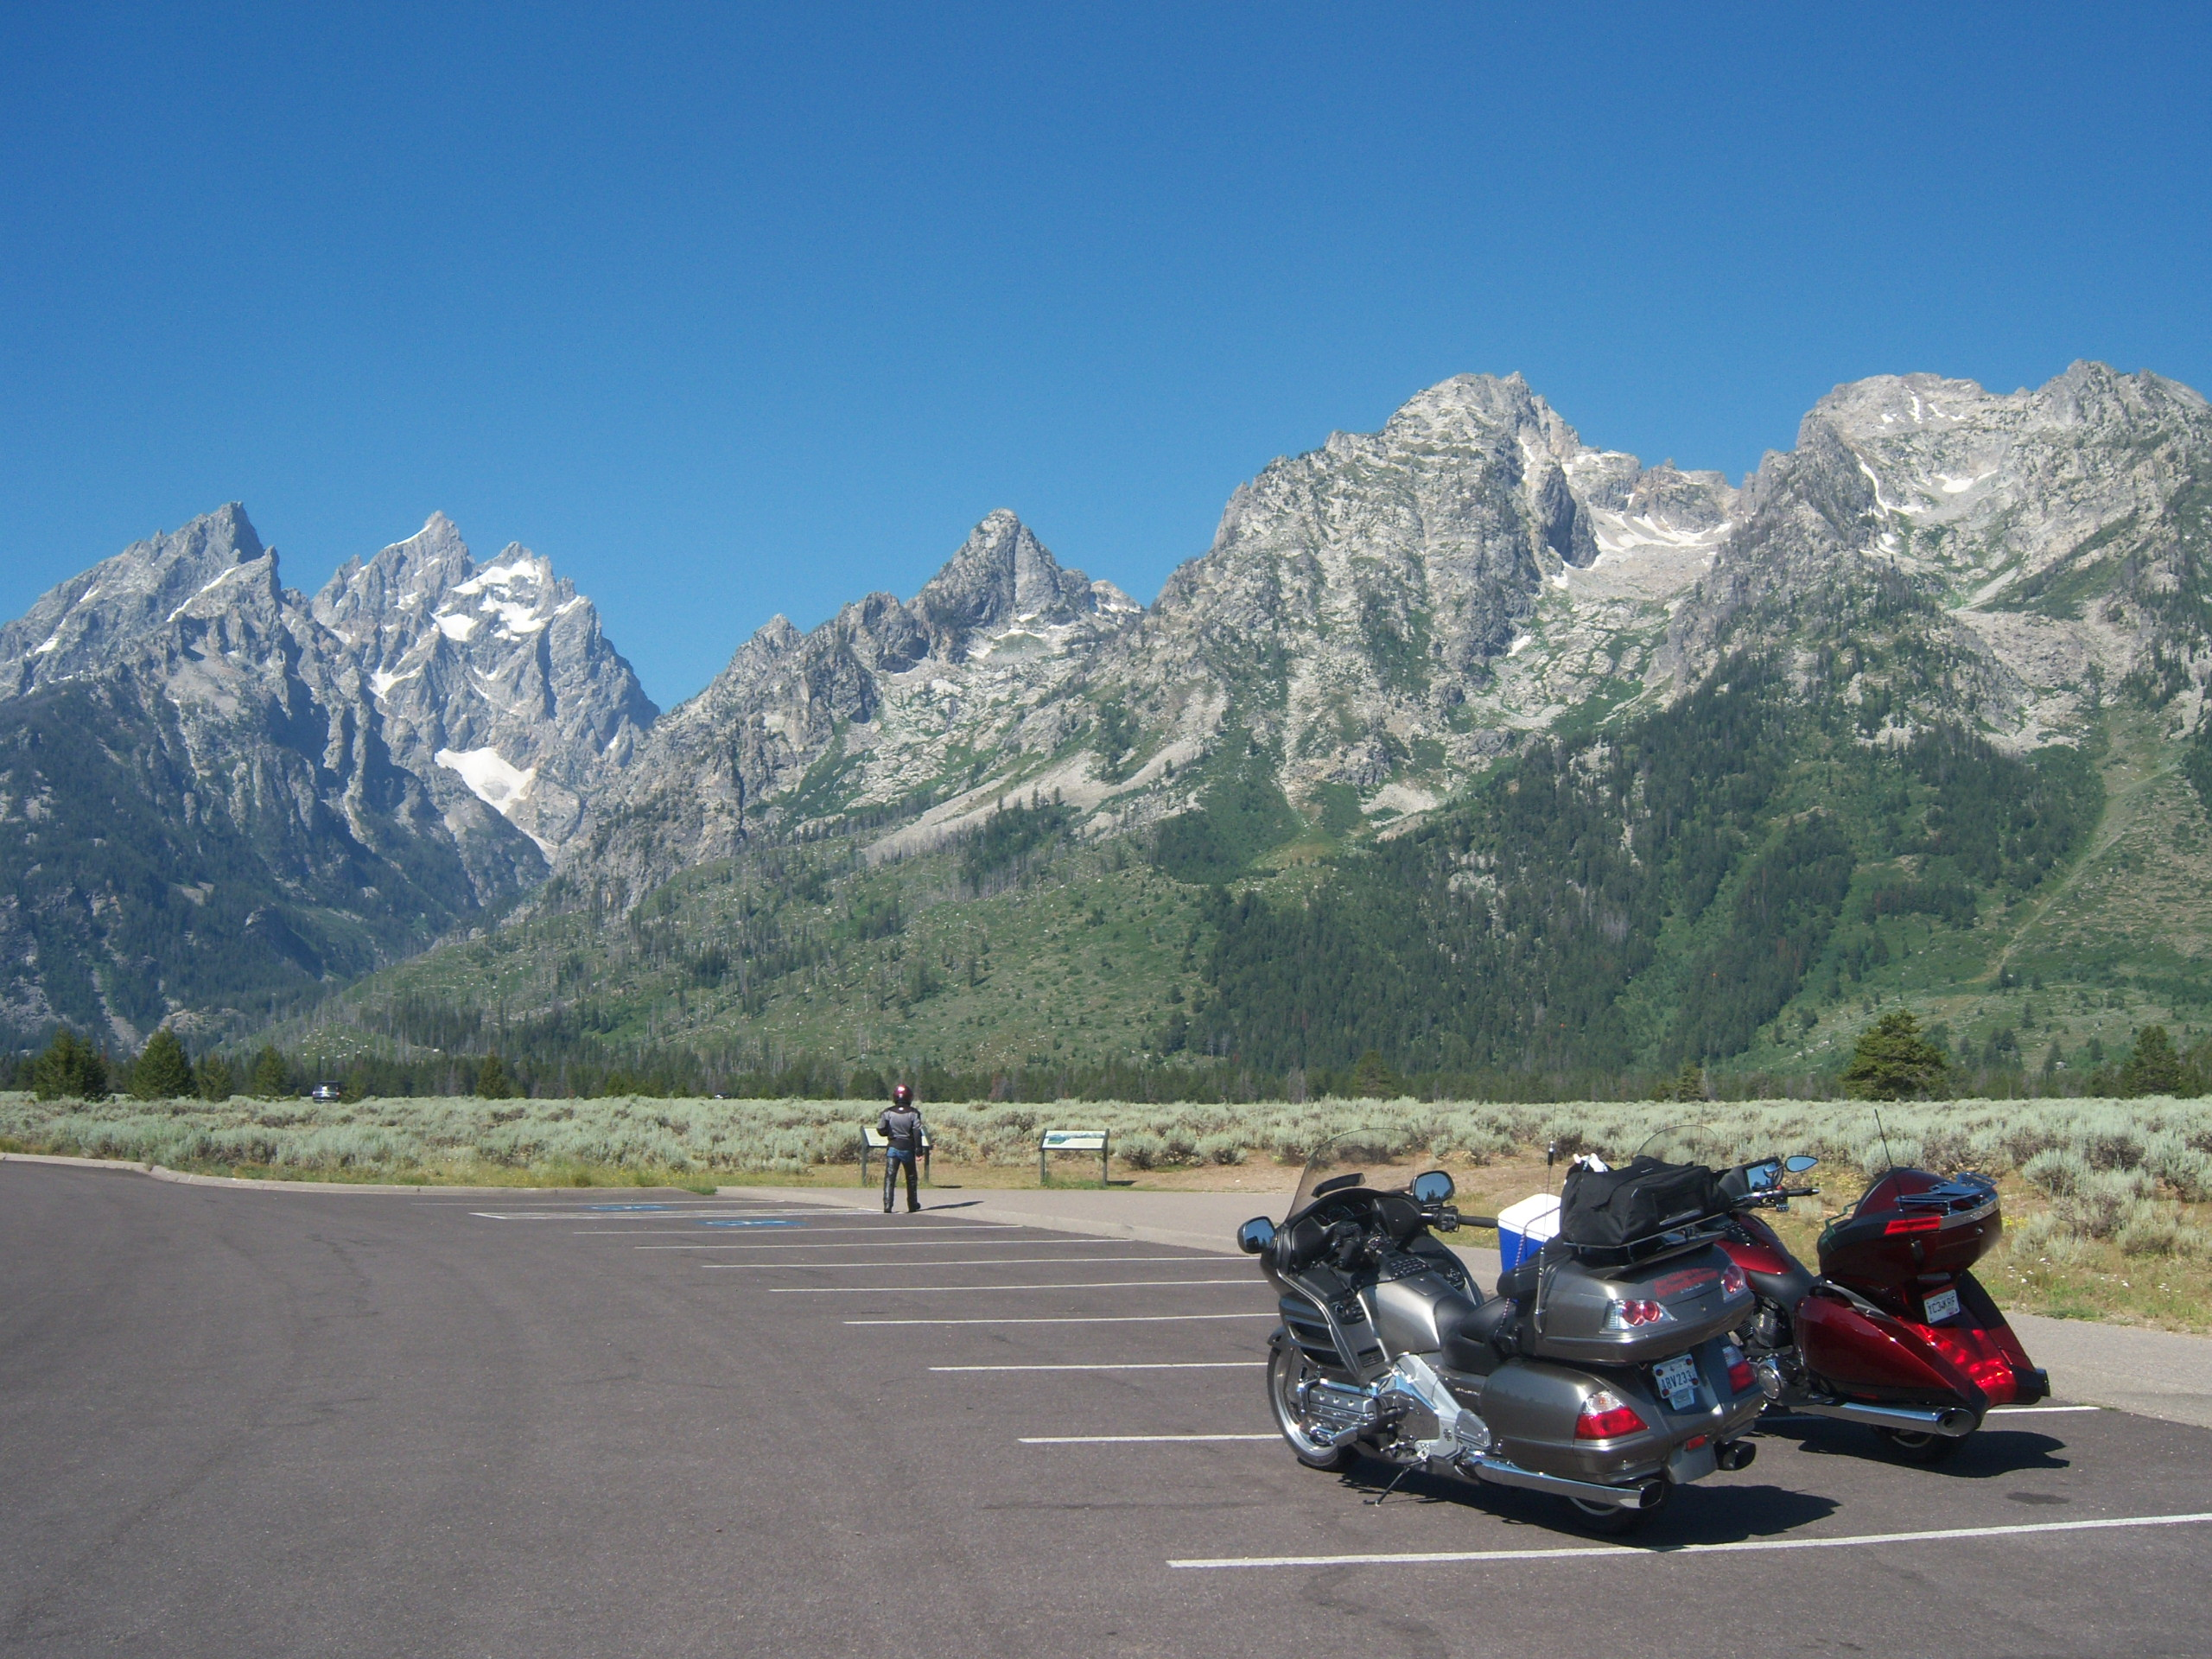 national parks, motorcycle, ride, travel, adventure